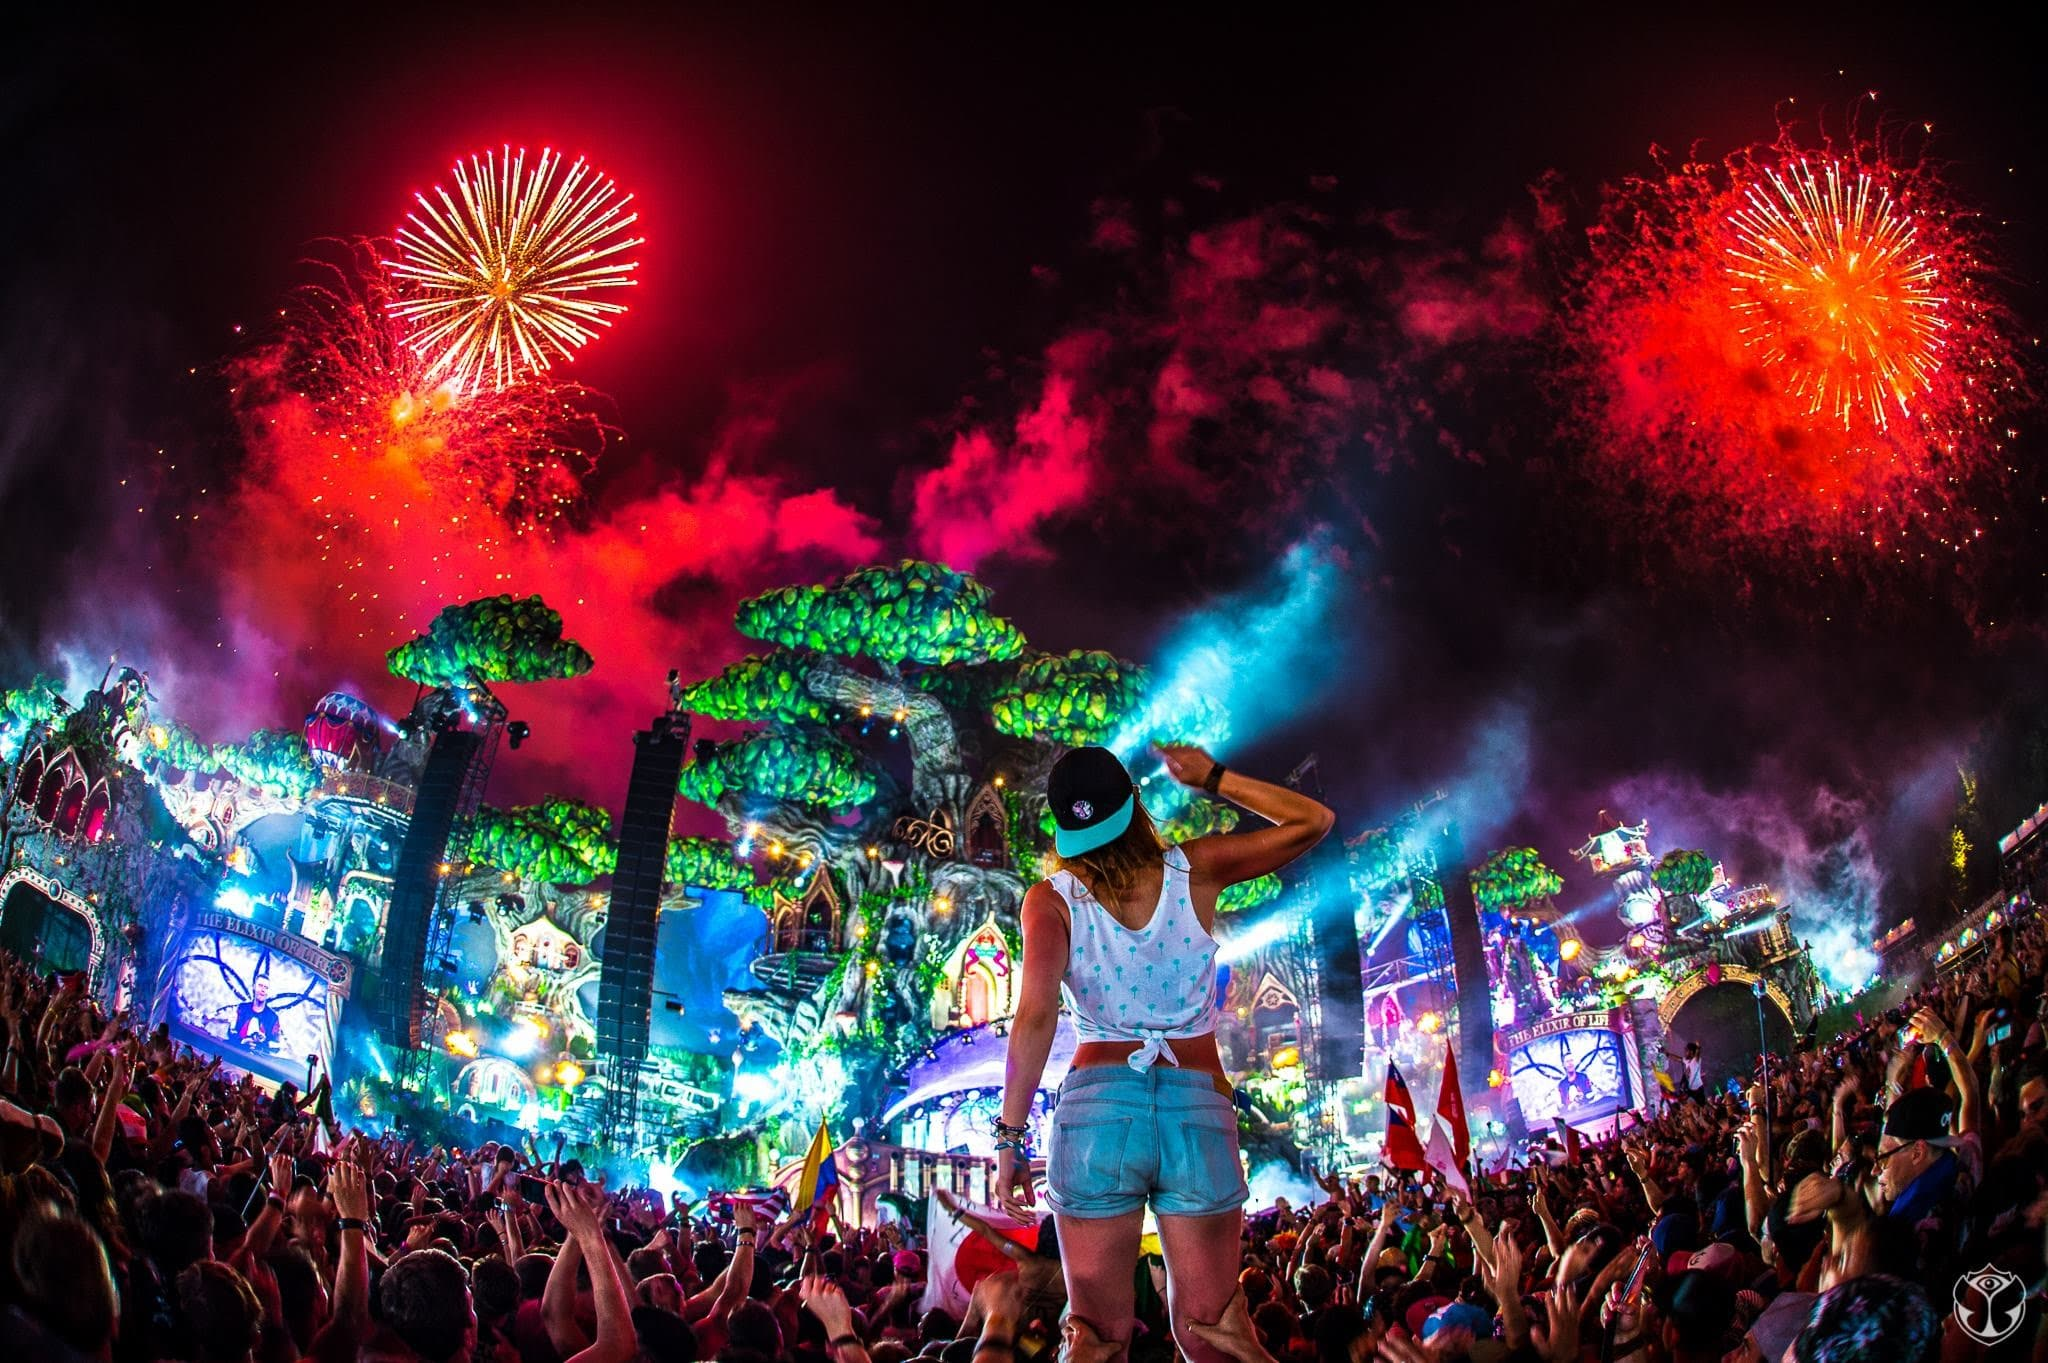 Best EDM Songs of All Time | Top 20 Electronic Dance Music Songs